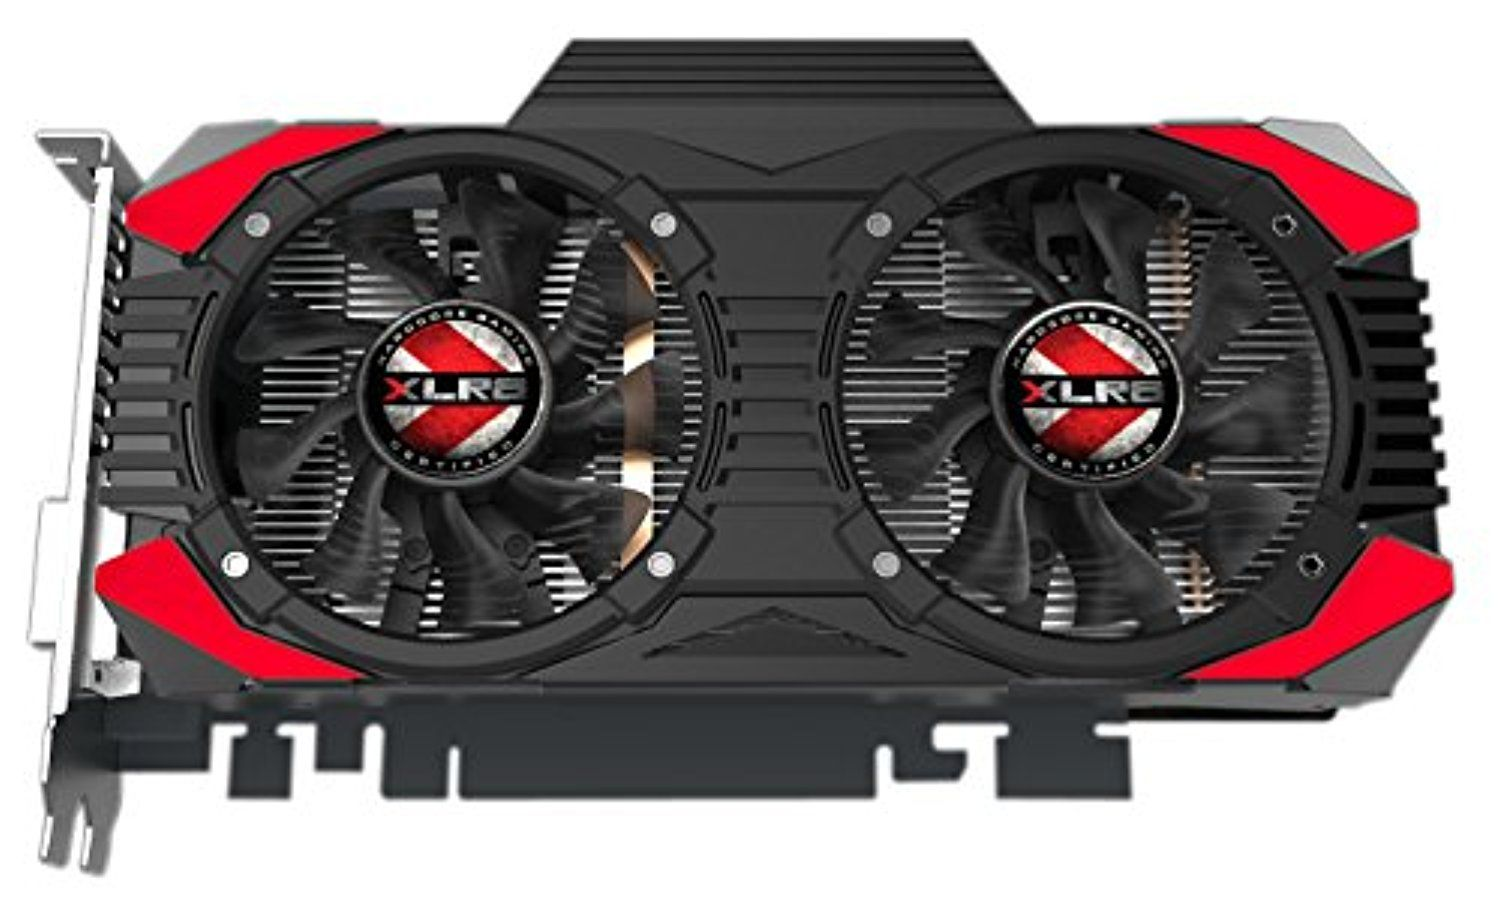 Details About Asus Nvidia Geforce Gtx 1060 3gb Gddr5 Graphics Card Dualgtx1060o3g With Images Graphic Card Asus Nvidia